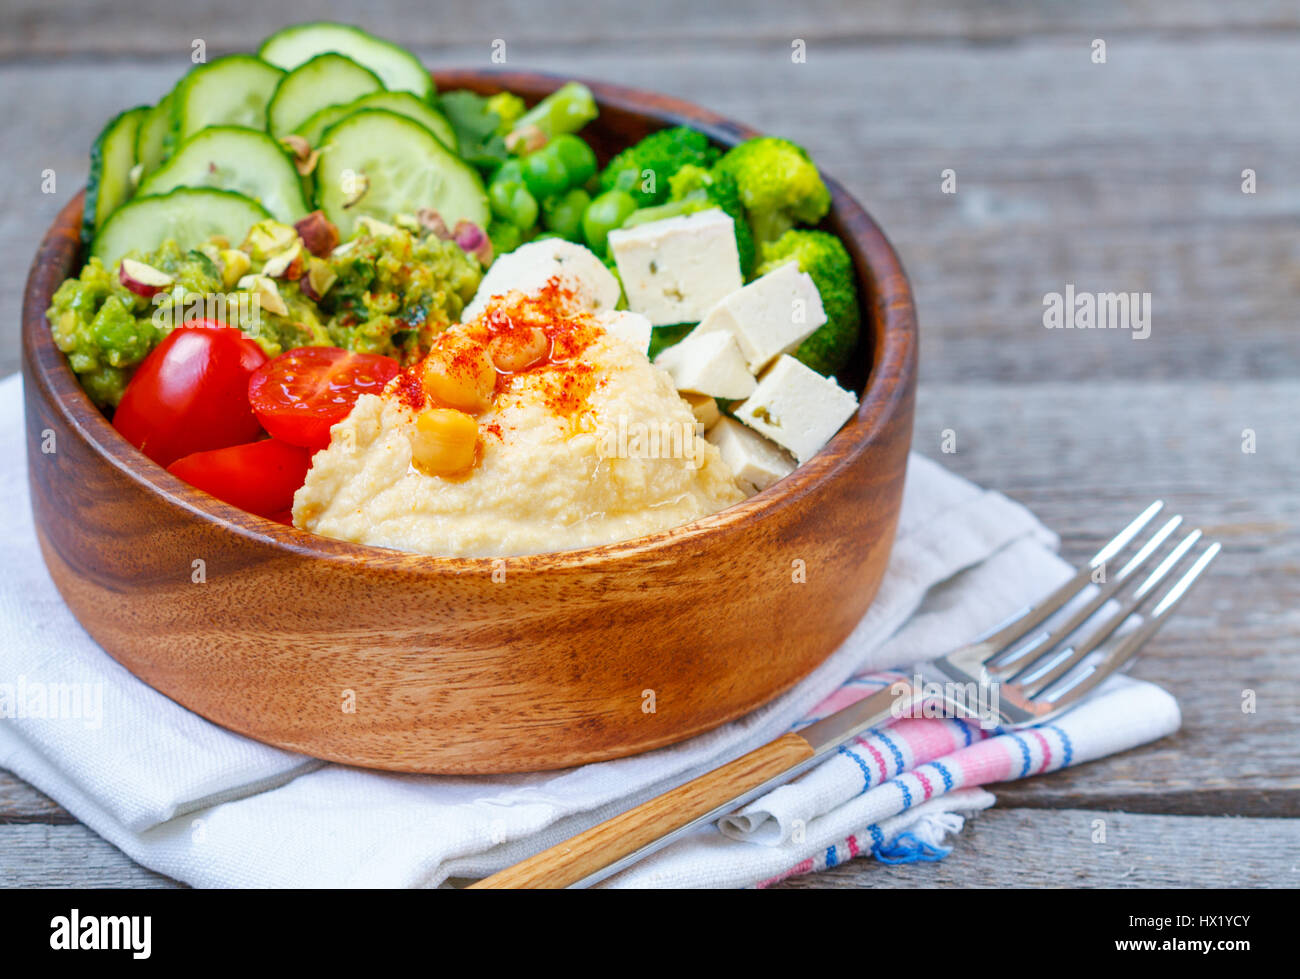 Bowl of bright healthy vegan lunch: vegetable salad with ...